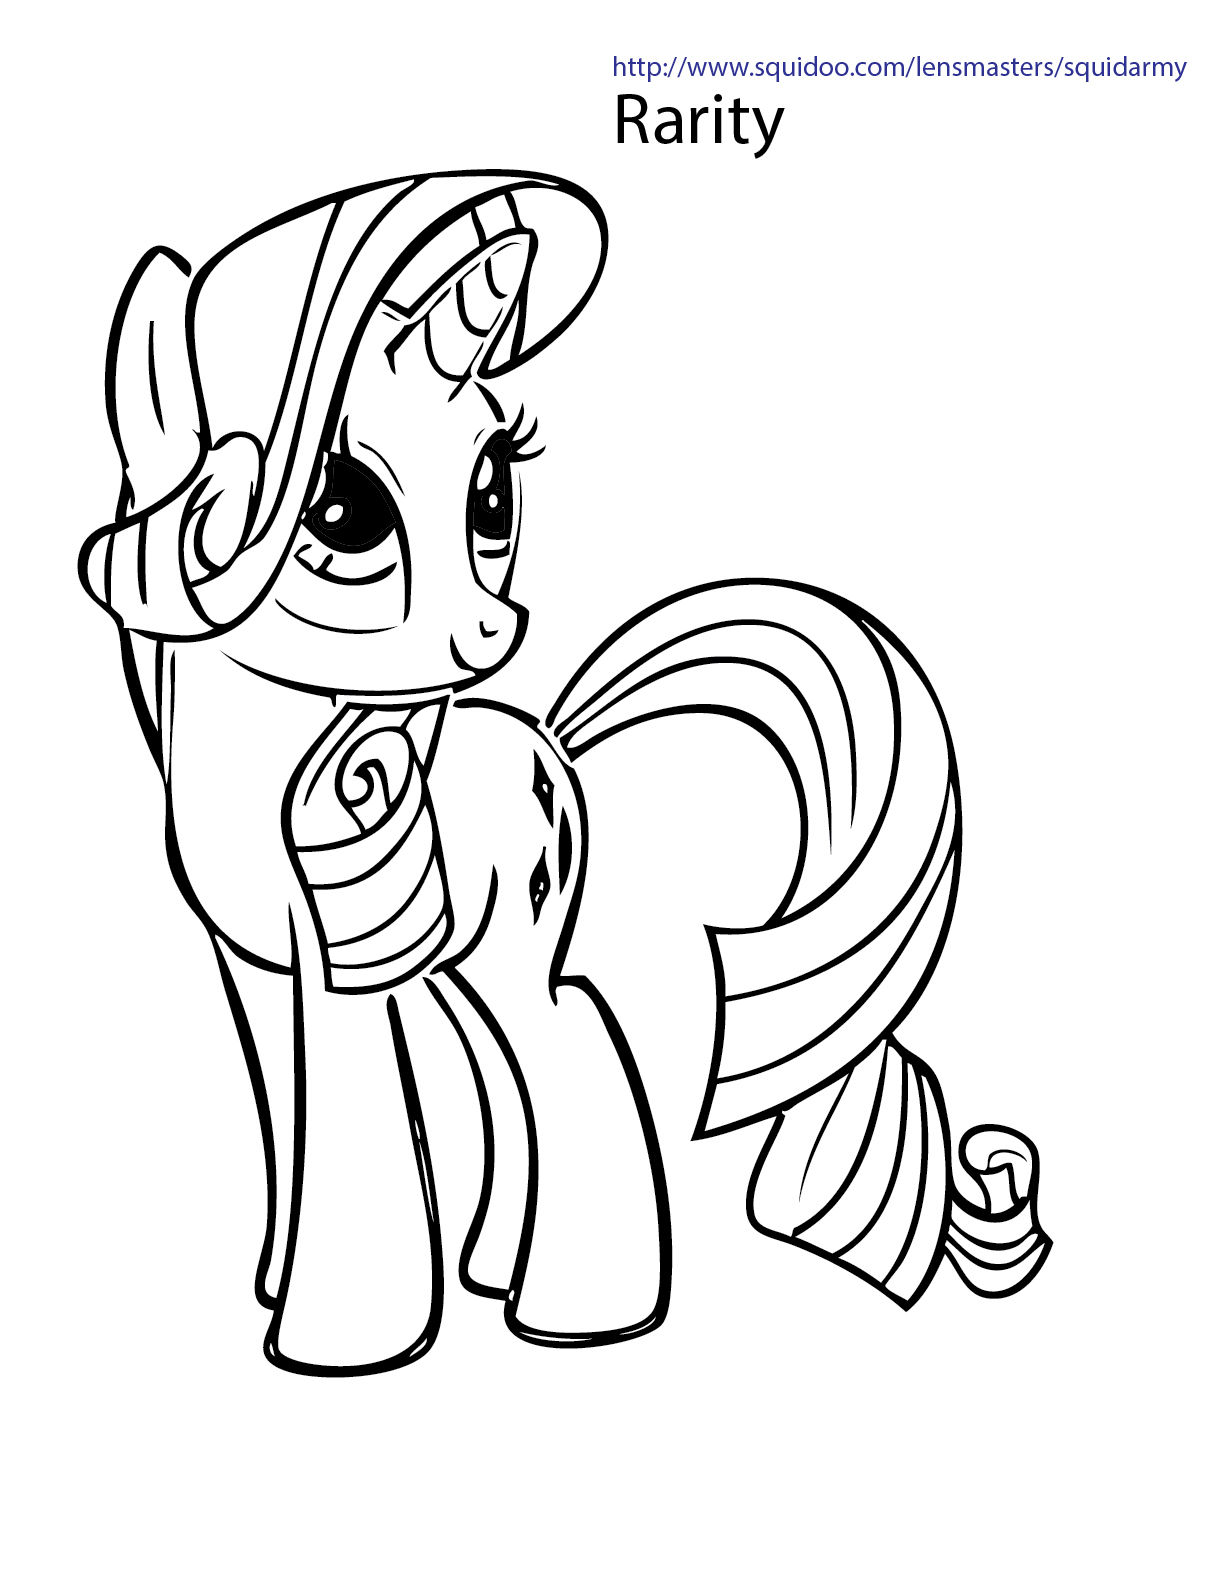 my little pony coloring pages rarity - free coloring pages of rarity equestria girl